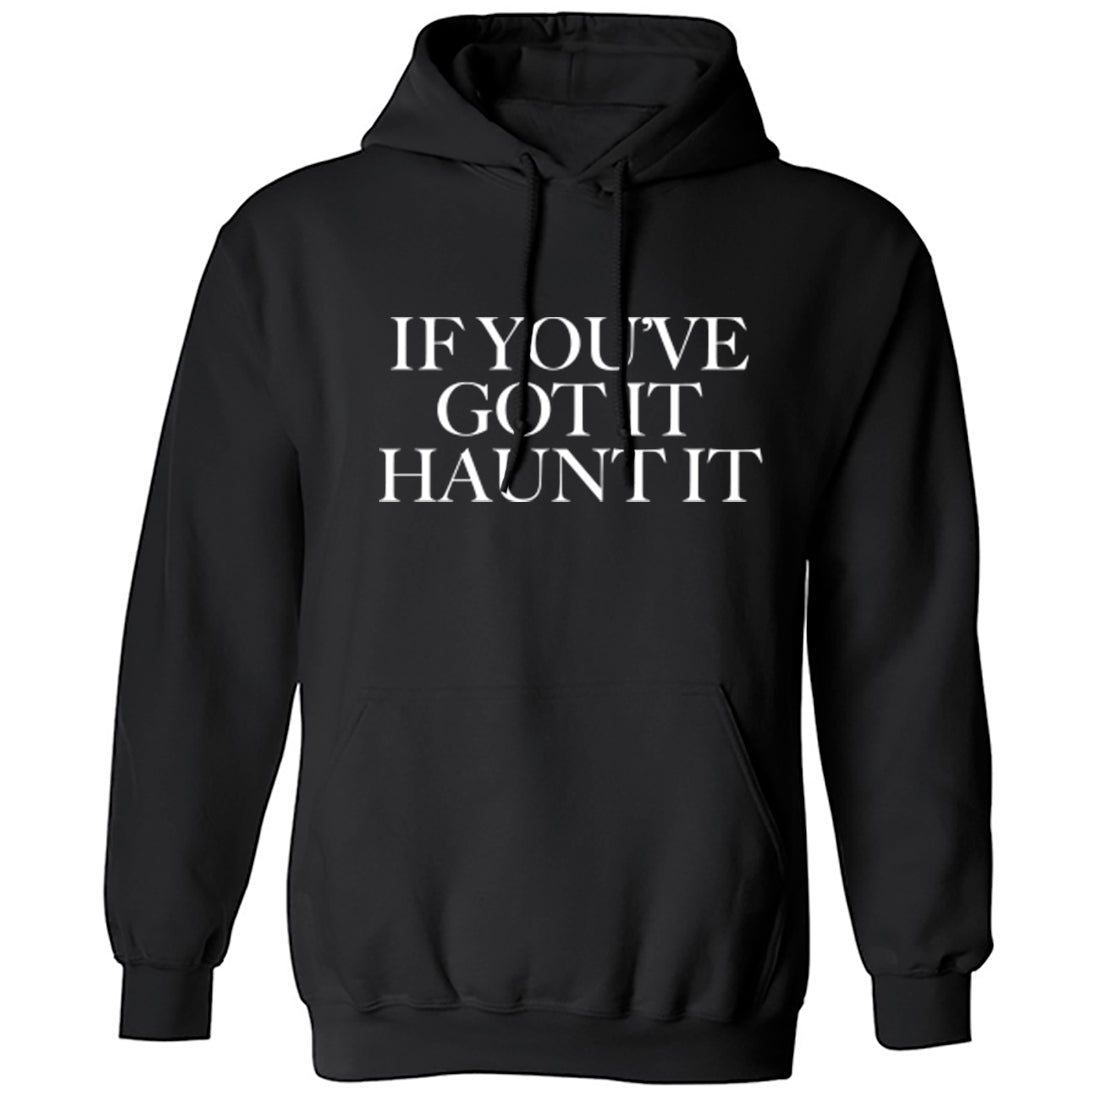 If You've Got It Haunt It Unisex Hoodie K1961 - Illustrated Identity Ltd.